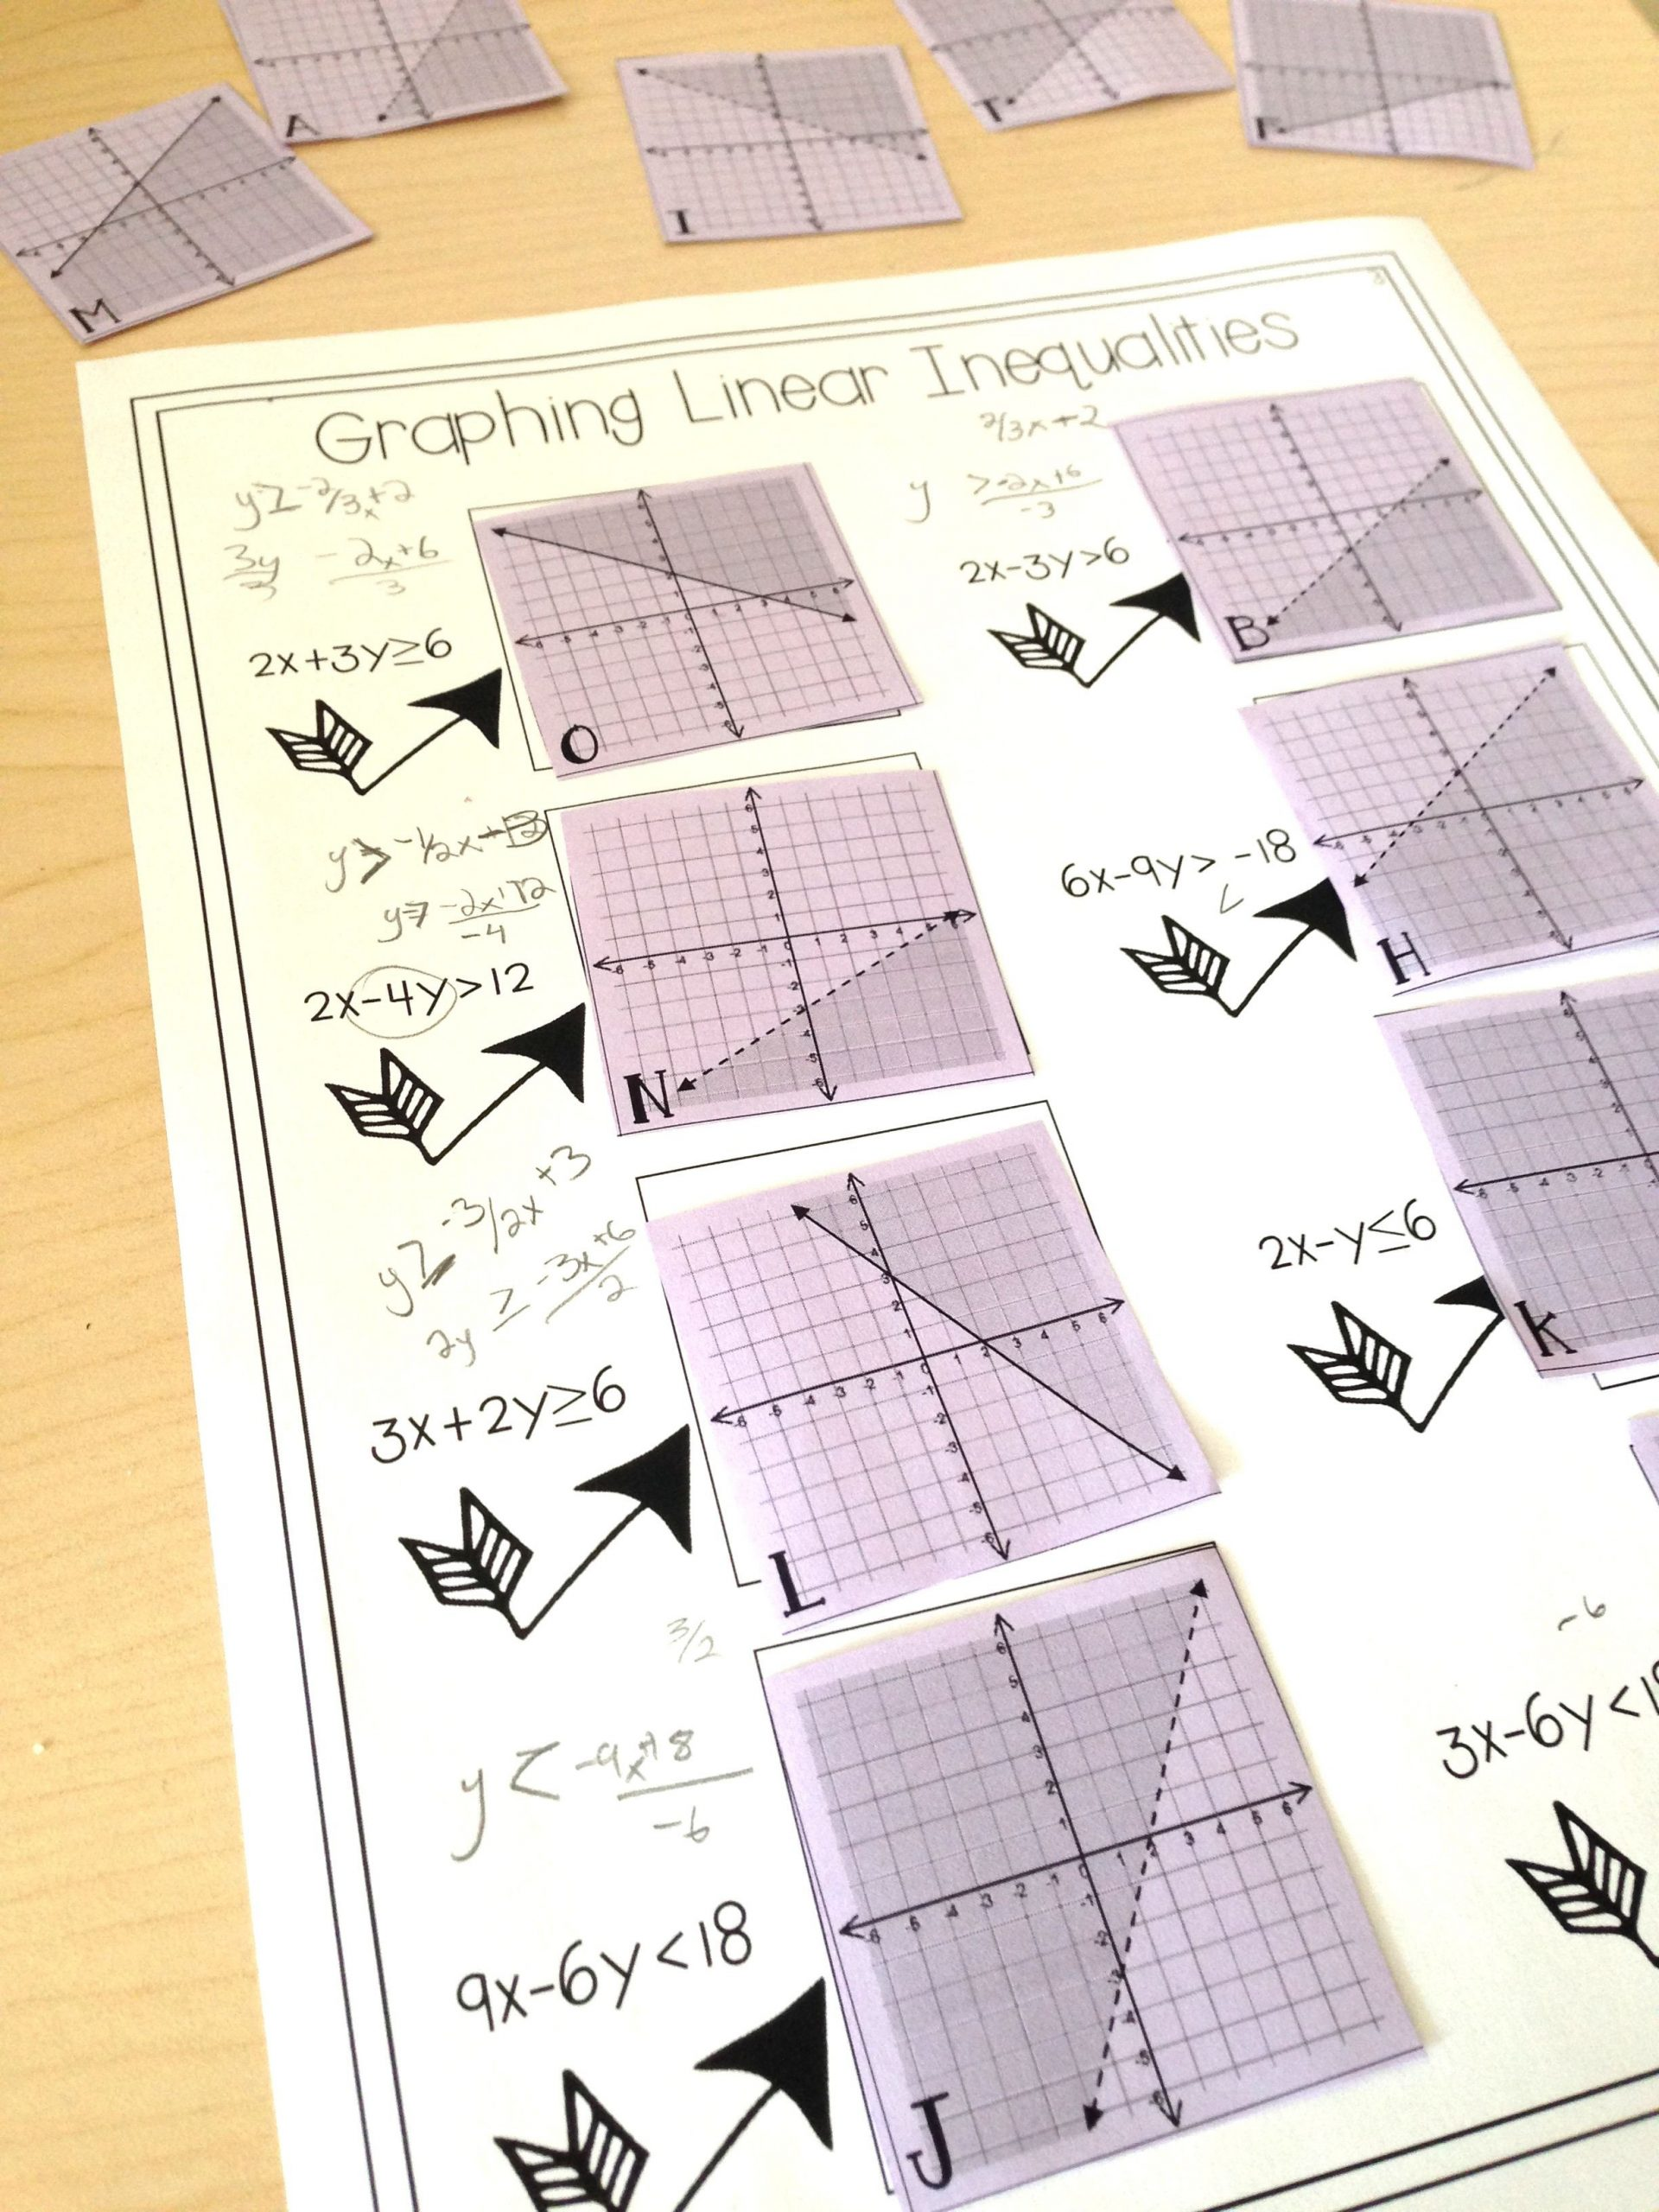 Graphing Linear Inequalities Worksheet This Was the Perfect Linear Inequalities Activity It Really